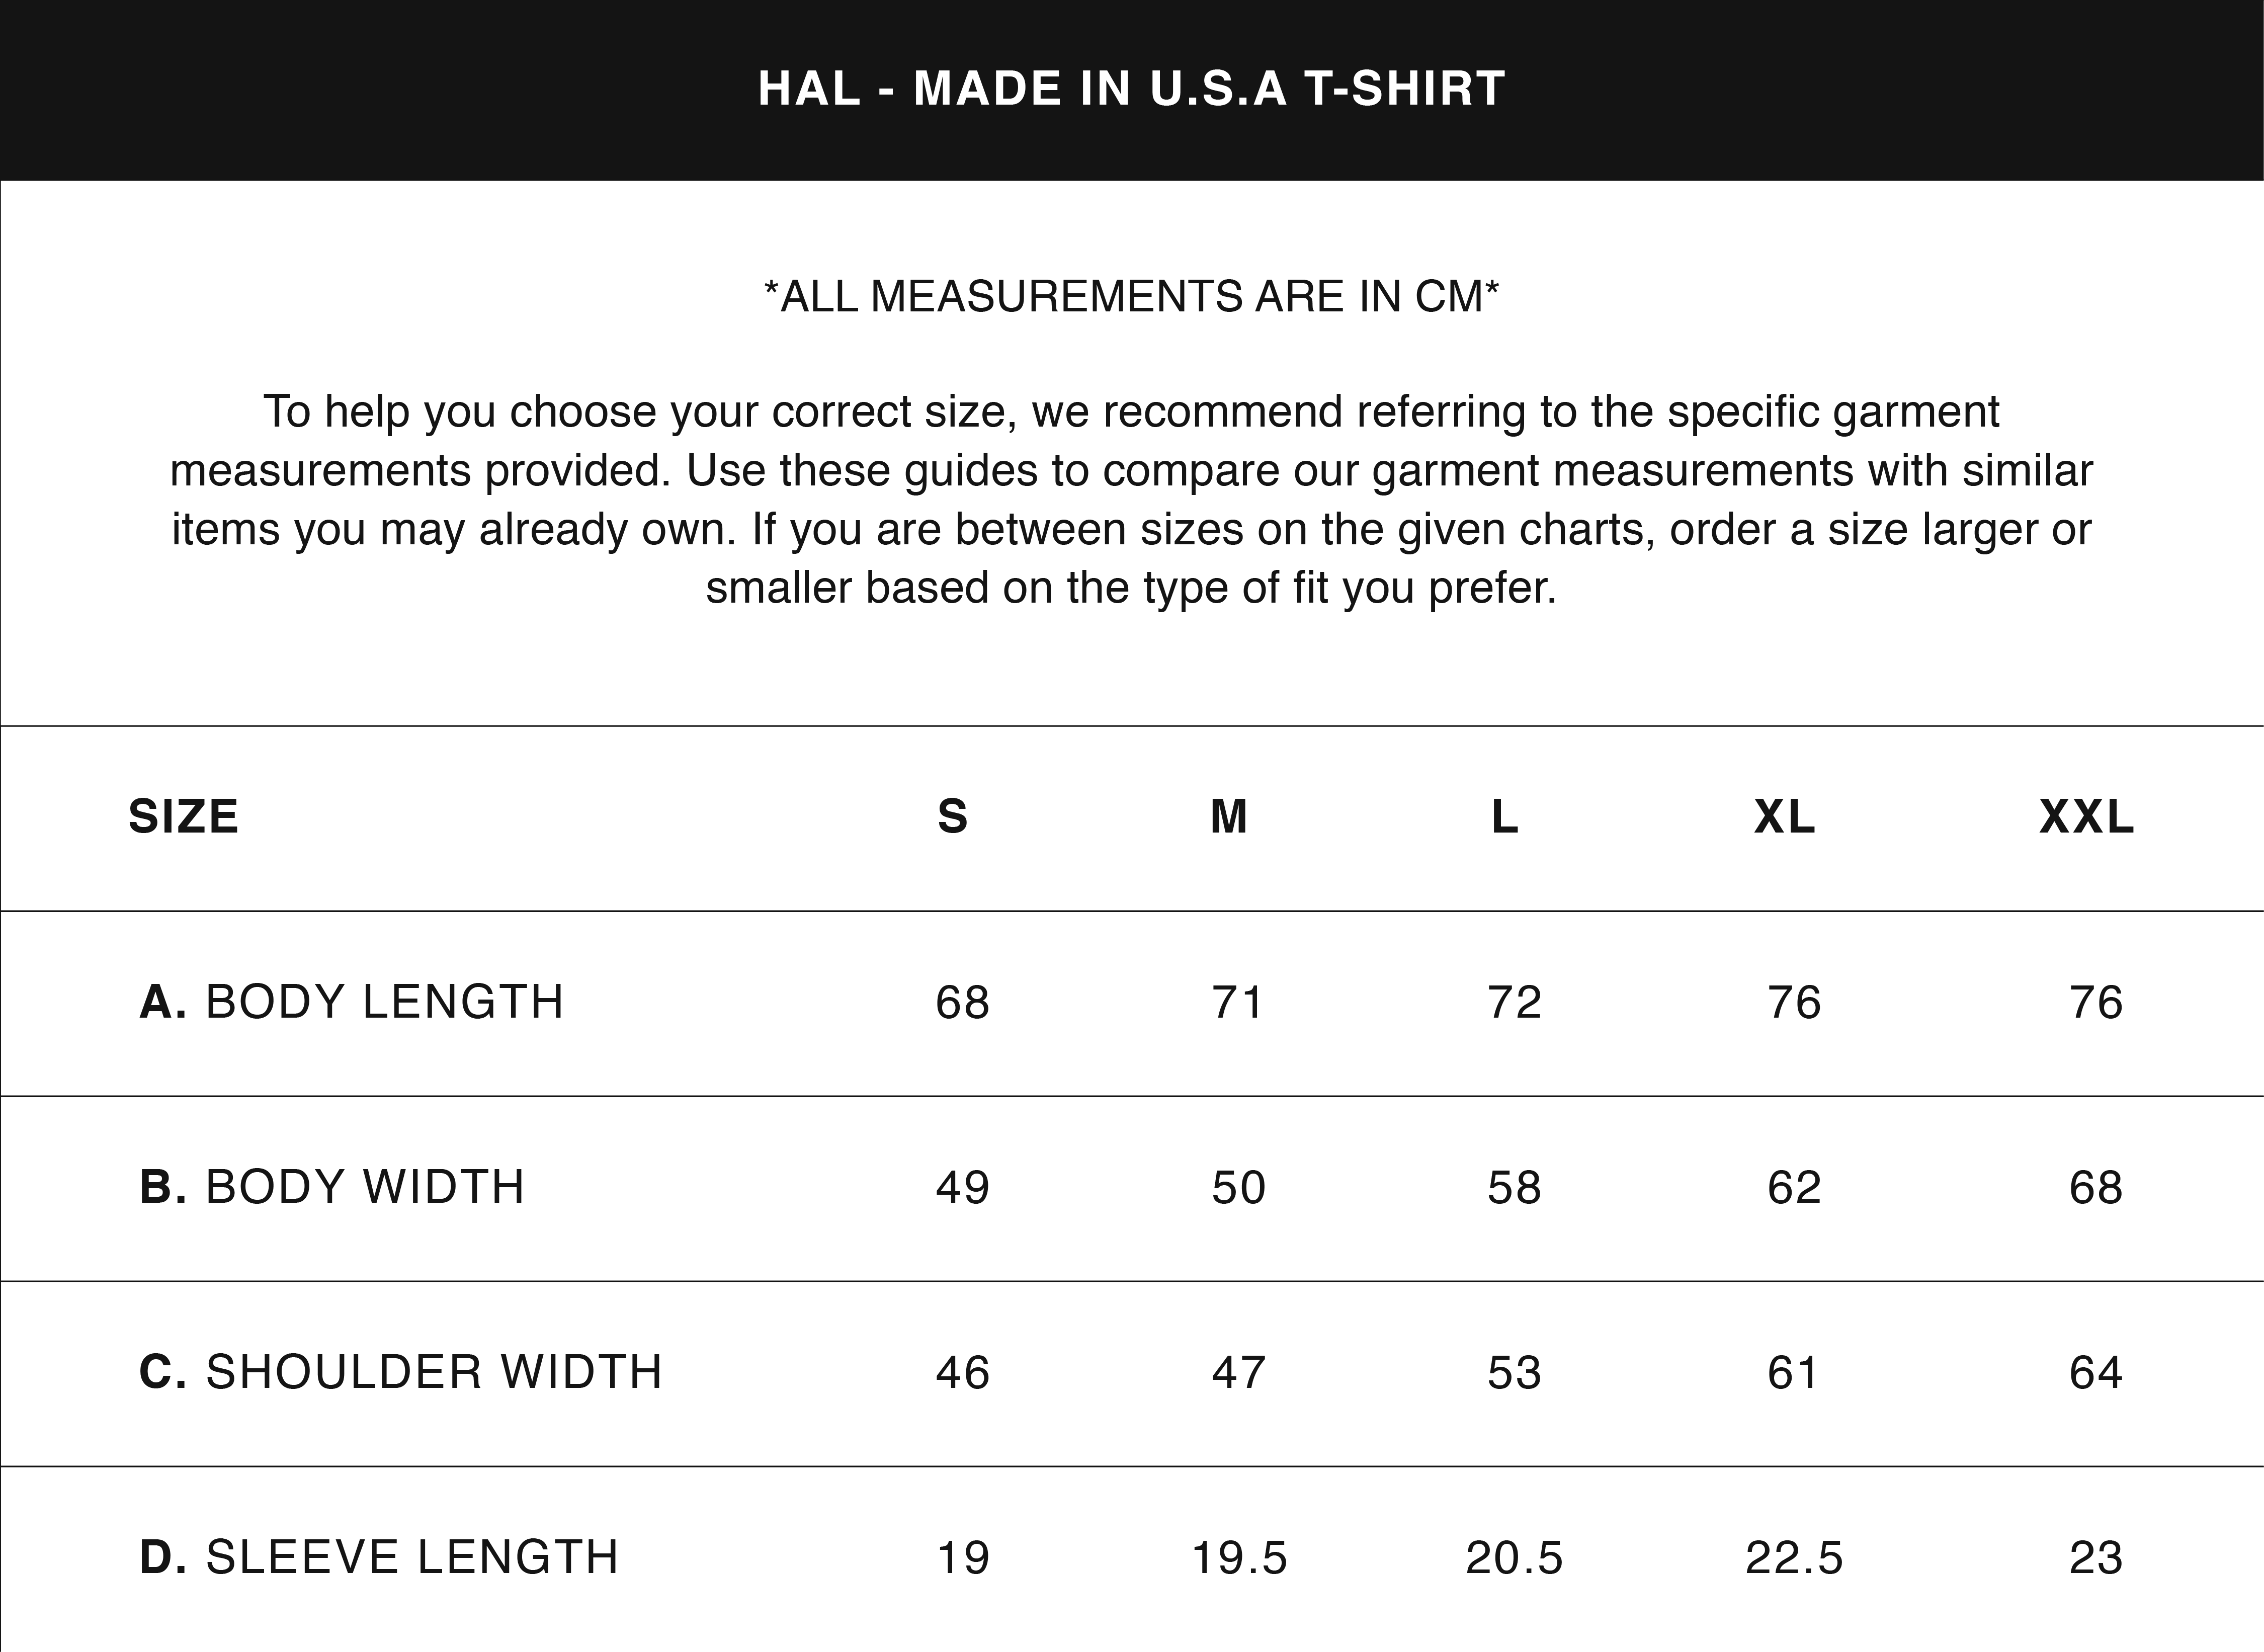 HAL SIZE GUIDES MADE IN USA T-SHIRT